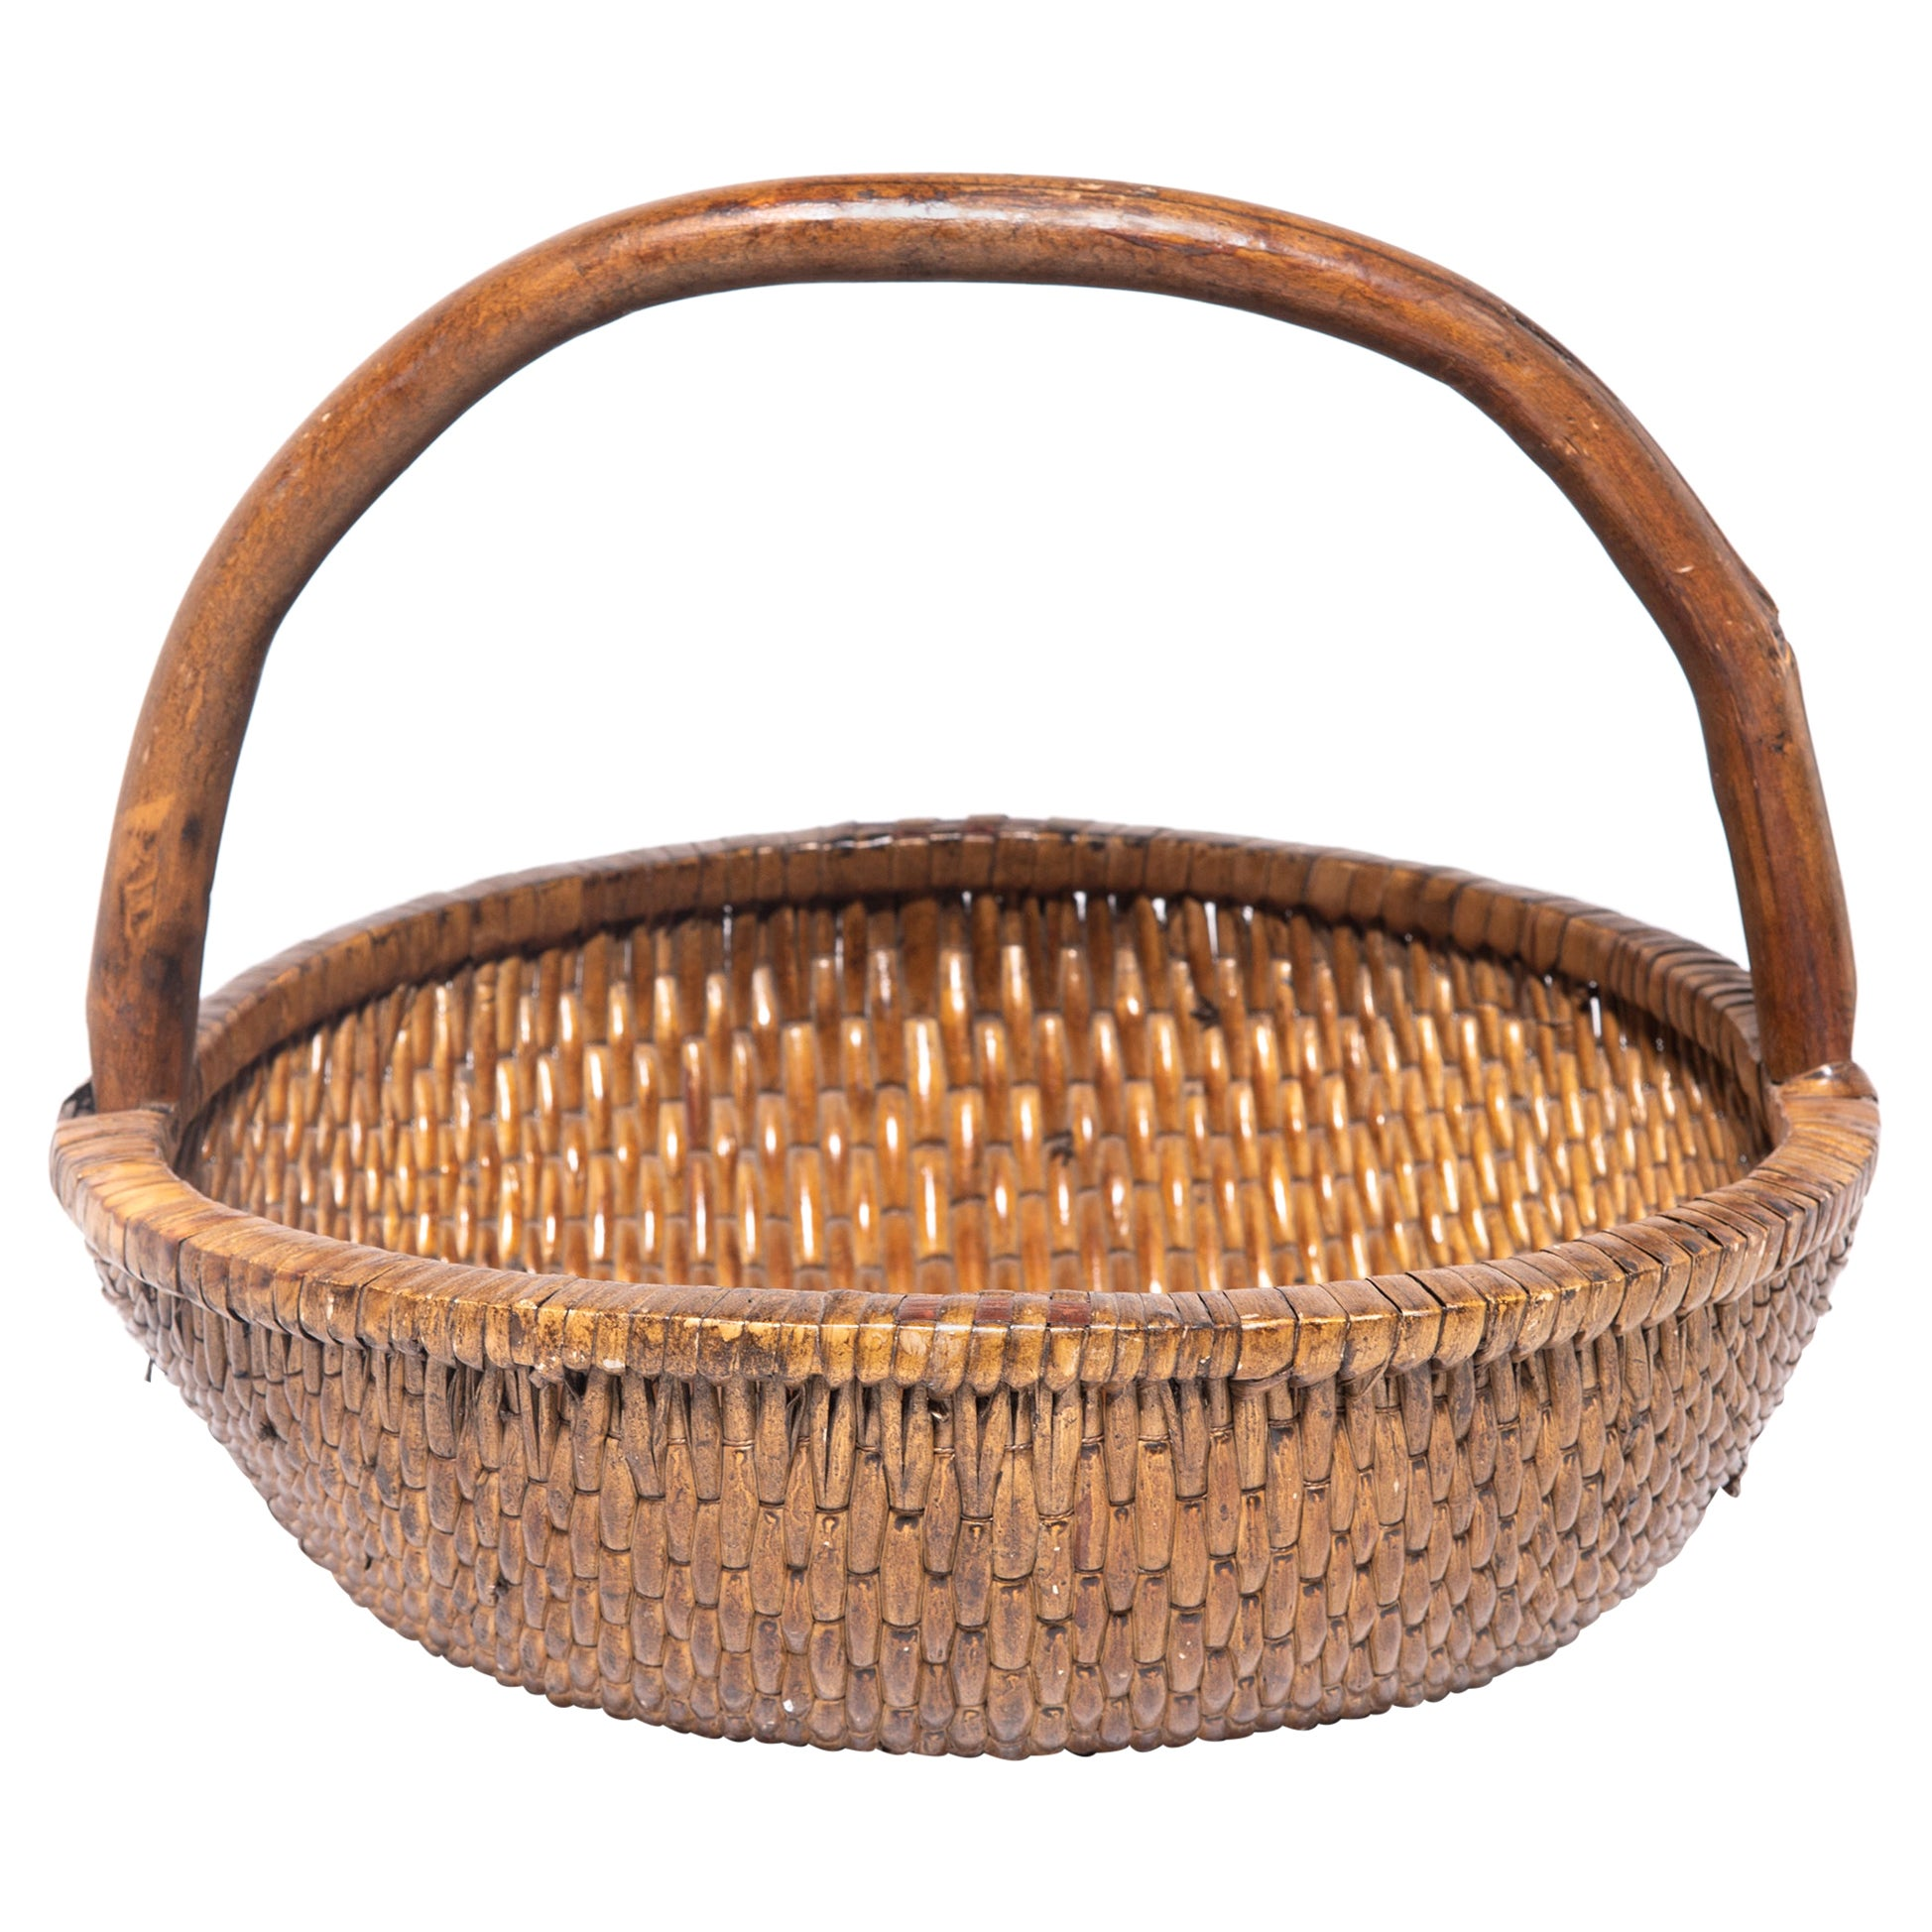 Chinese Round Woven Basket with Handle